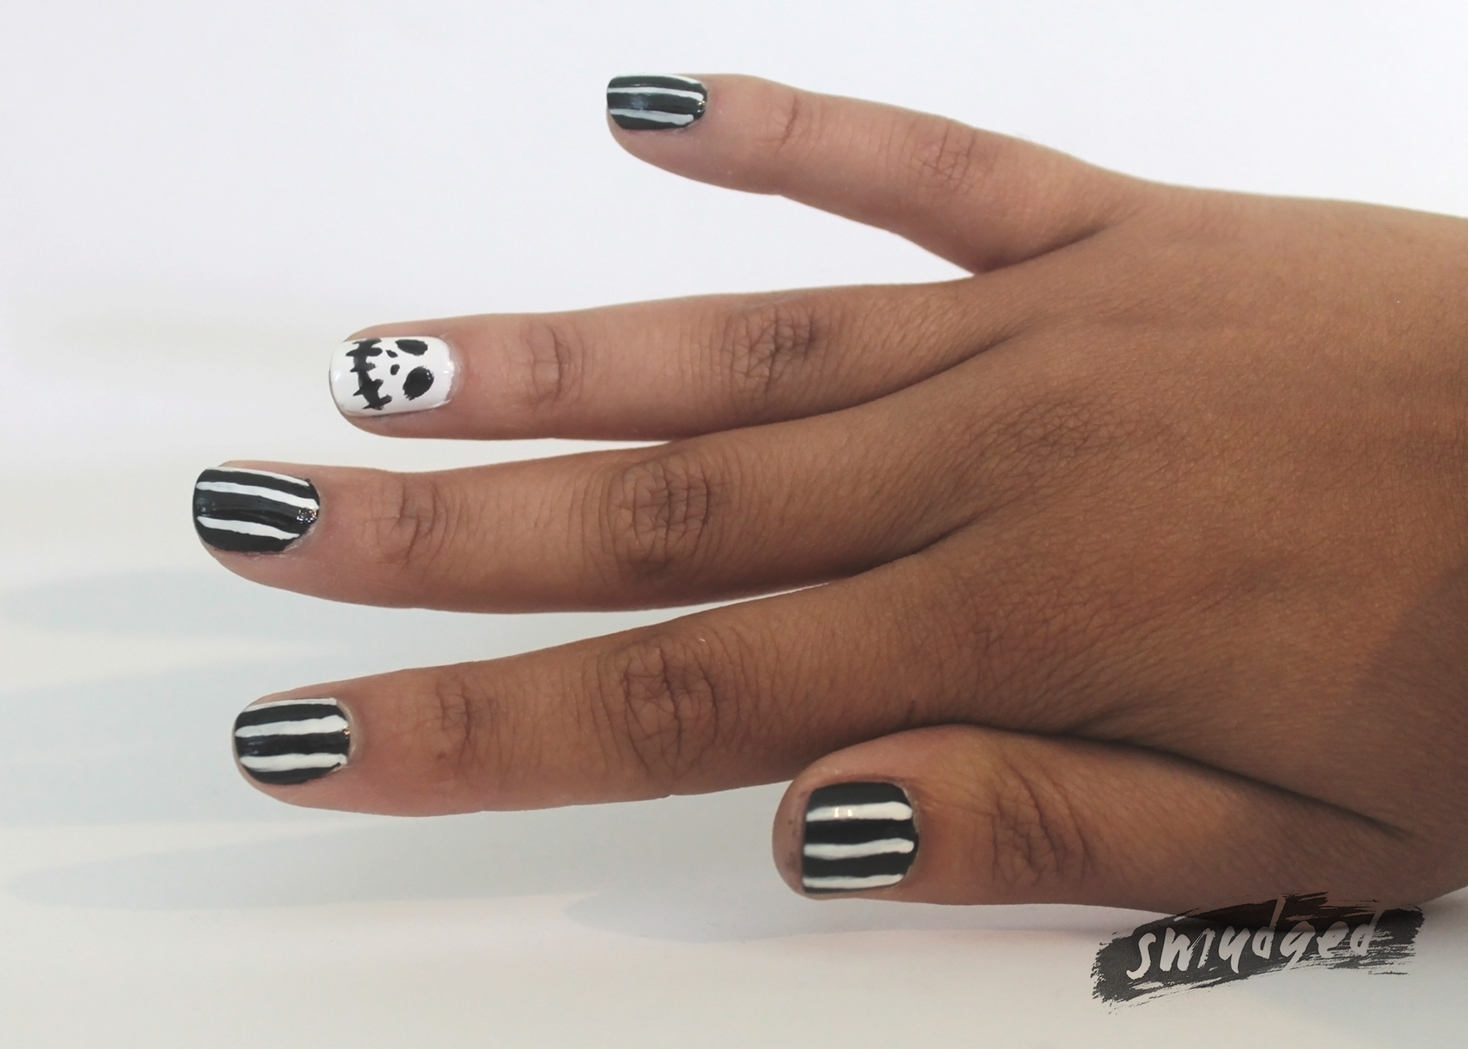 Jack Skellington Nails (plus a Smudged Hijacking! WITH SEVERAL ...